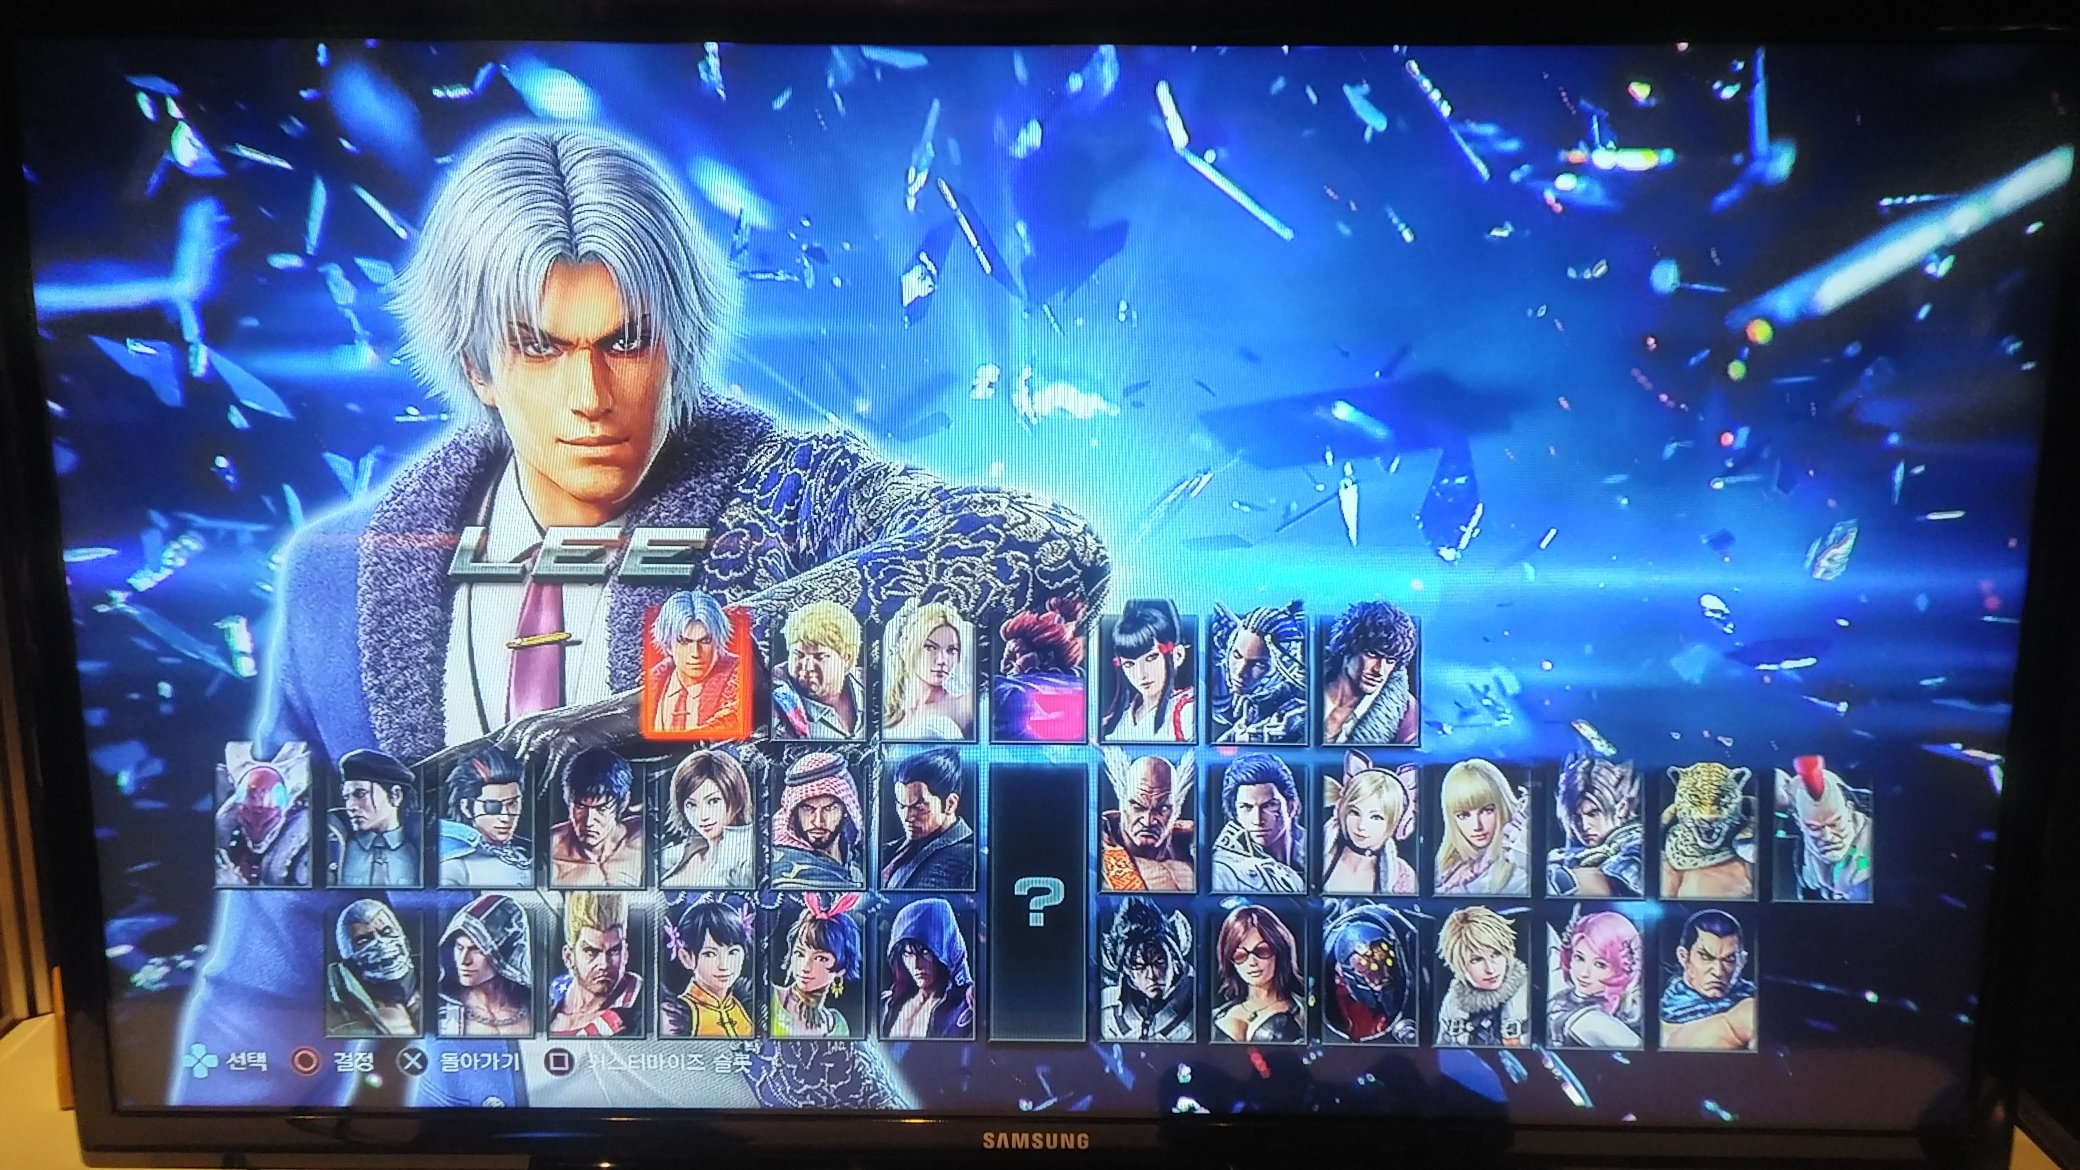 New Footage Of Console Tekken 7 Shows Lee Chaolan In Action